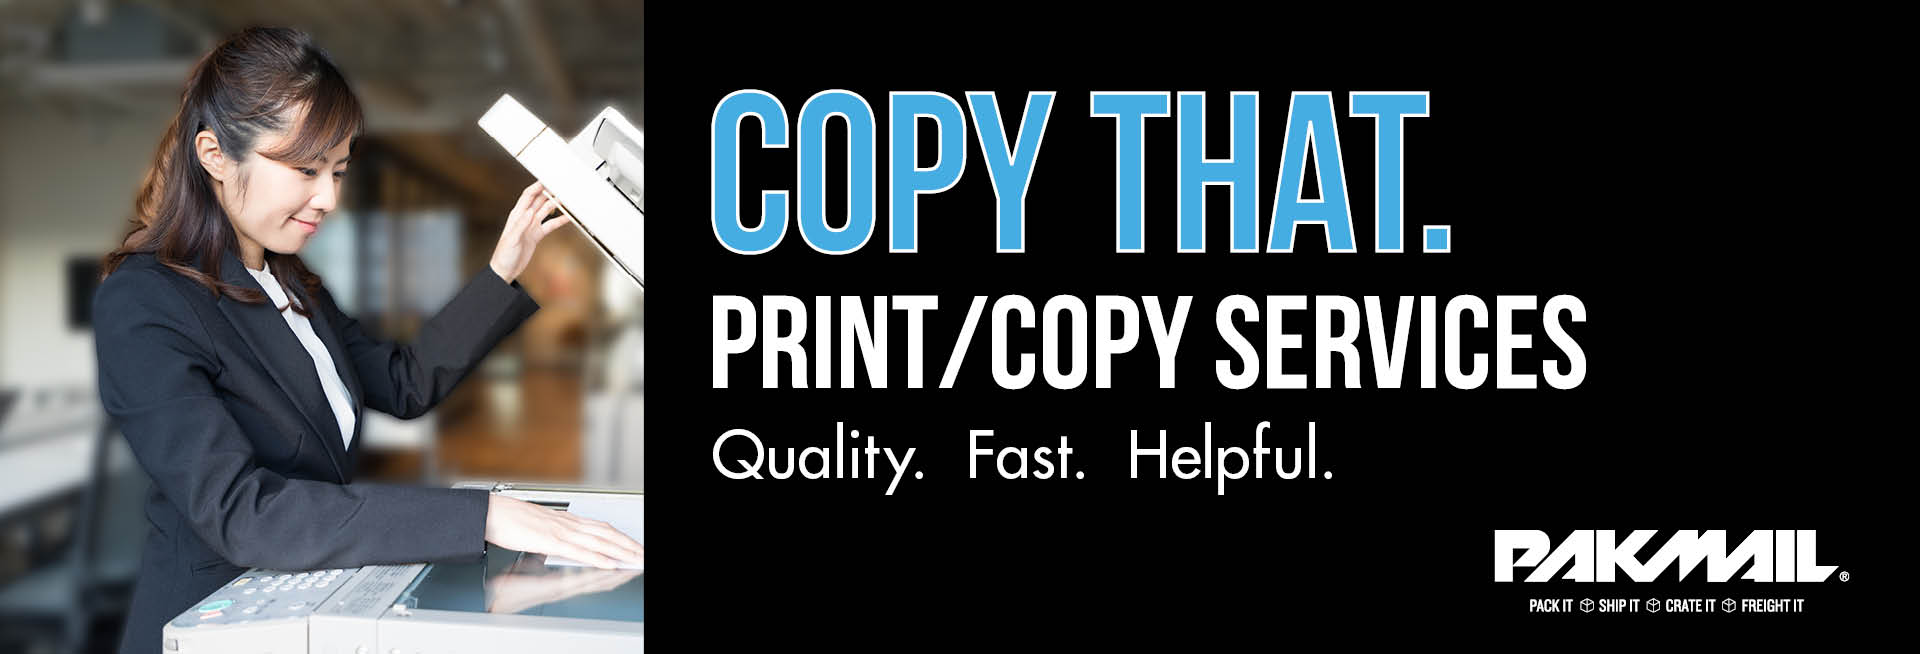 Copy That - Print/Copy Services - Quality. Fast. Helpful.